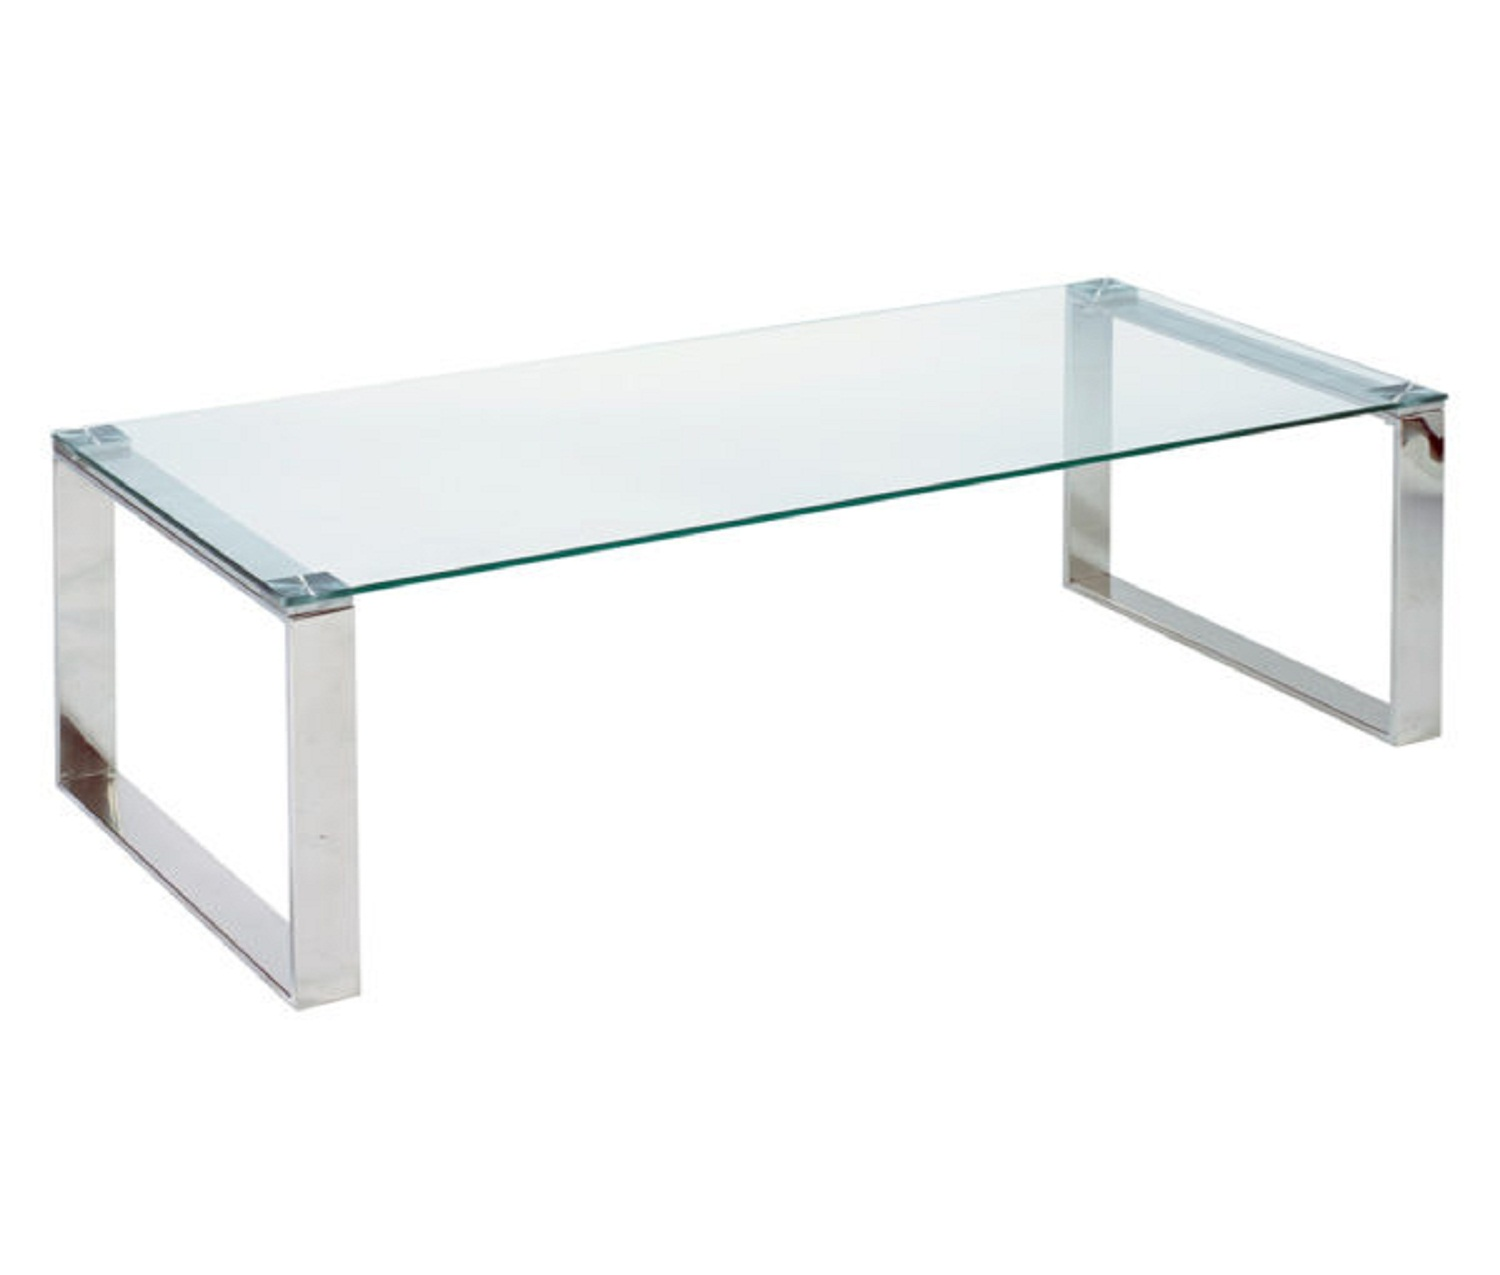 David Coffee Table, 100093, Coffee Table by Midha Furniture to Brampton, Mississauga, Etobicoke, Toronto, Scraborough, Caledon, Oakville, Markham, Ajax, Pickering, Oshawa, Richmondhill, Kitchener, Hamilton and GTA area